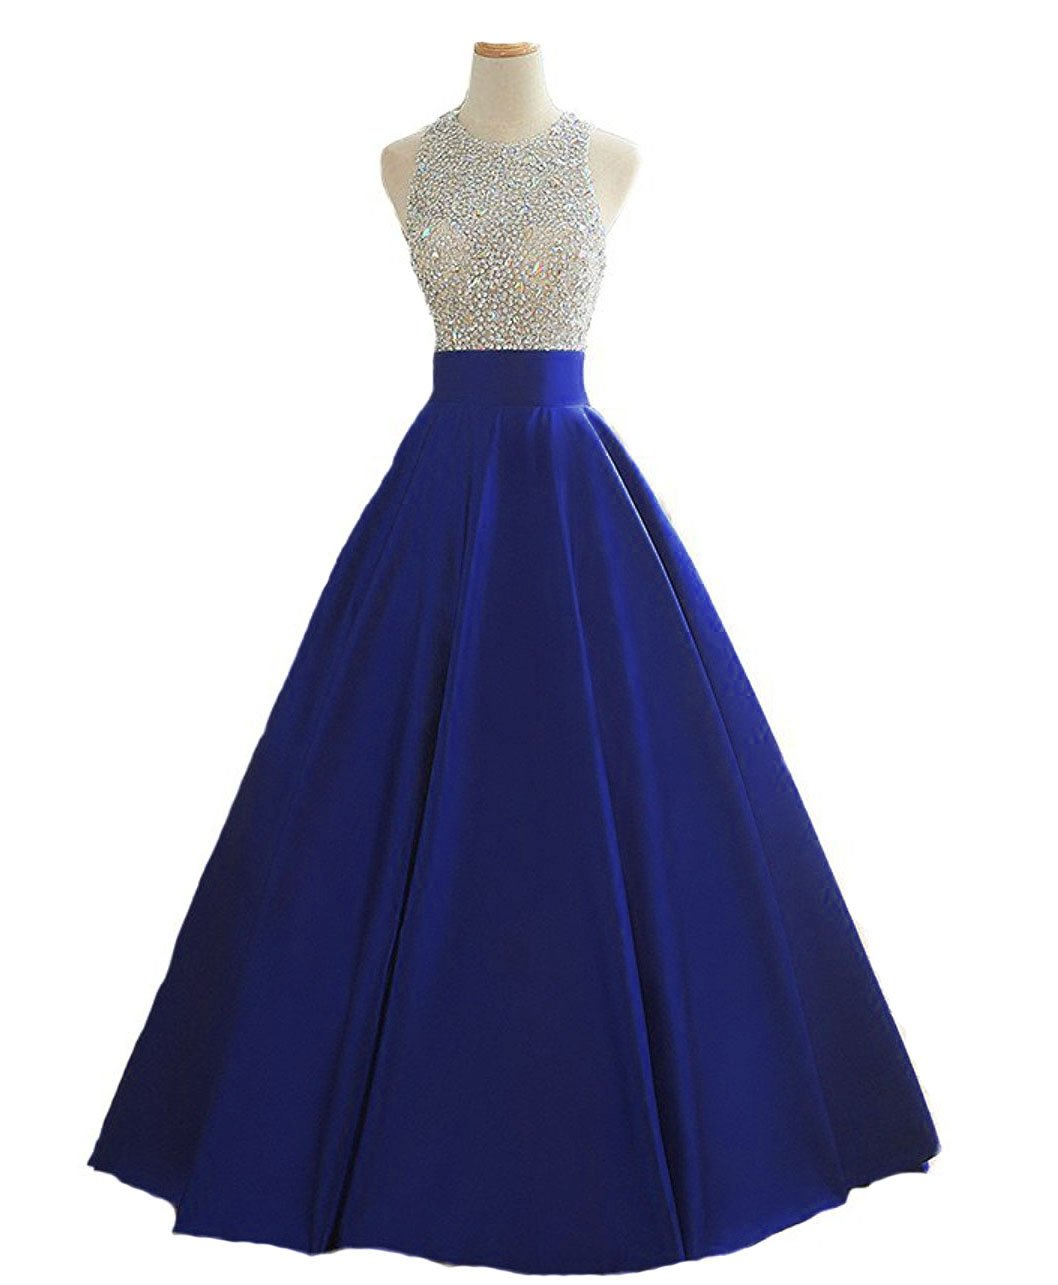 HEIMO Women's Sequins Keyhole Back Evening Ball Gown Beaded Prom Formal Dresses Long H095 2 Royal Blue